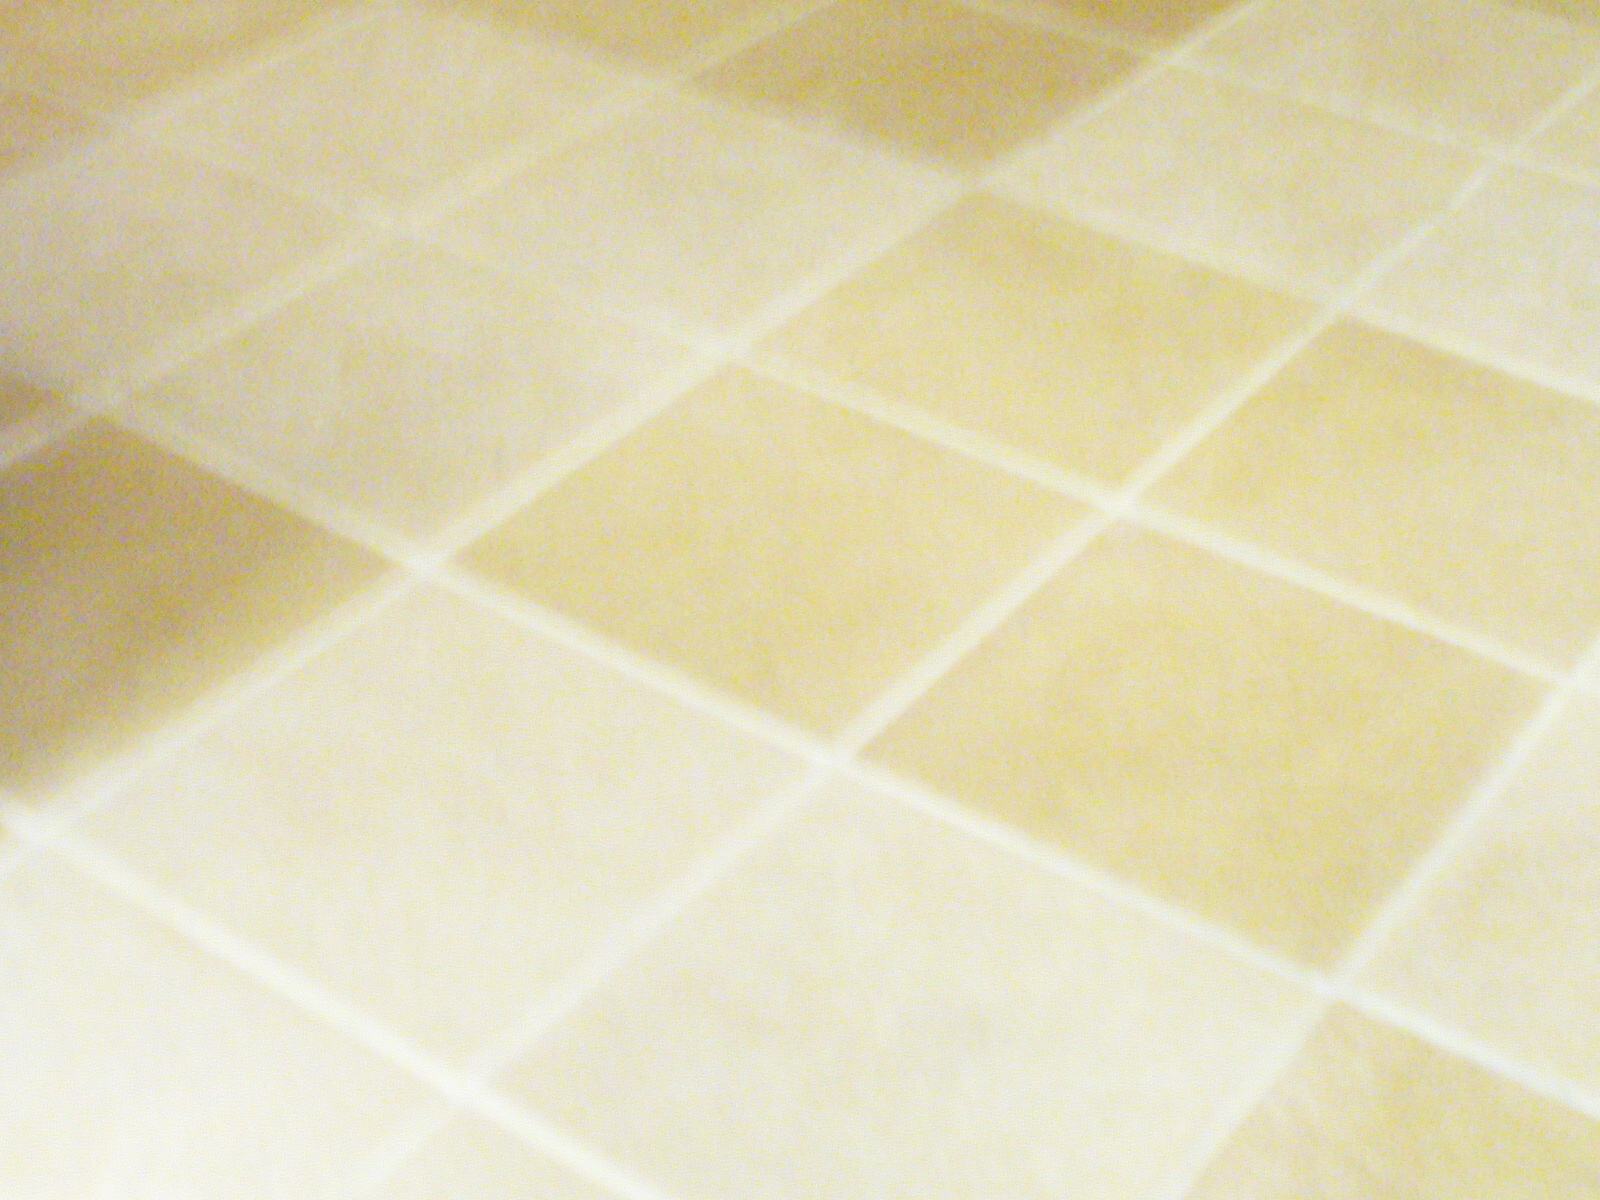 Tile grout cleaning bel air baltimore maryland 007701 0111101 dailygadgetfo Gallery